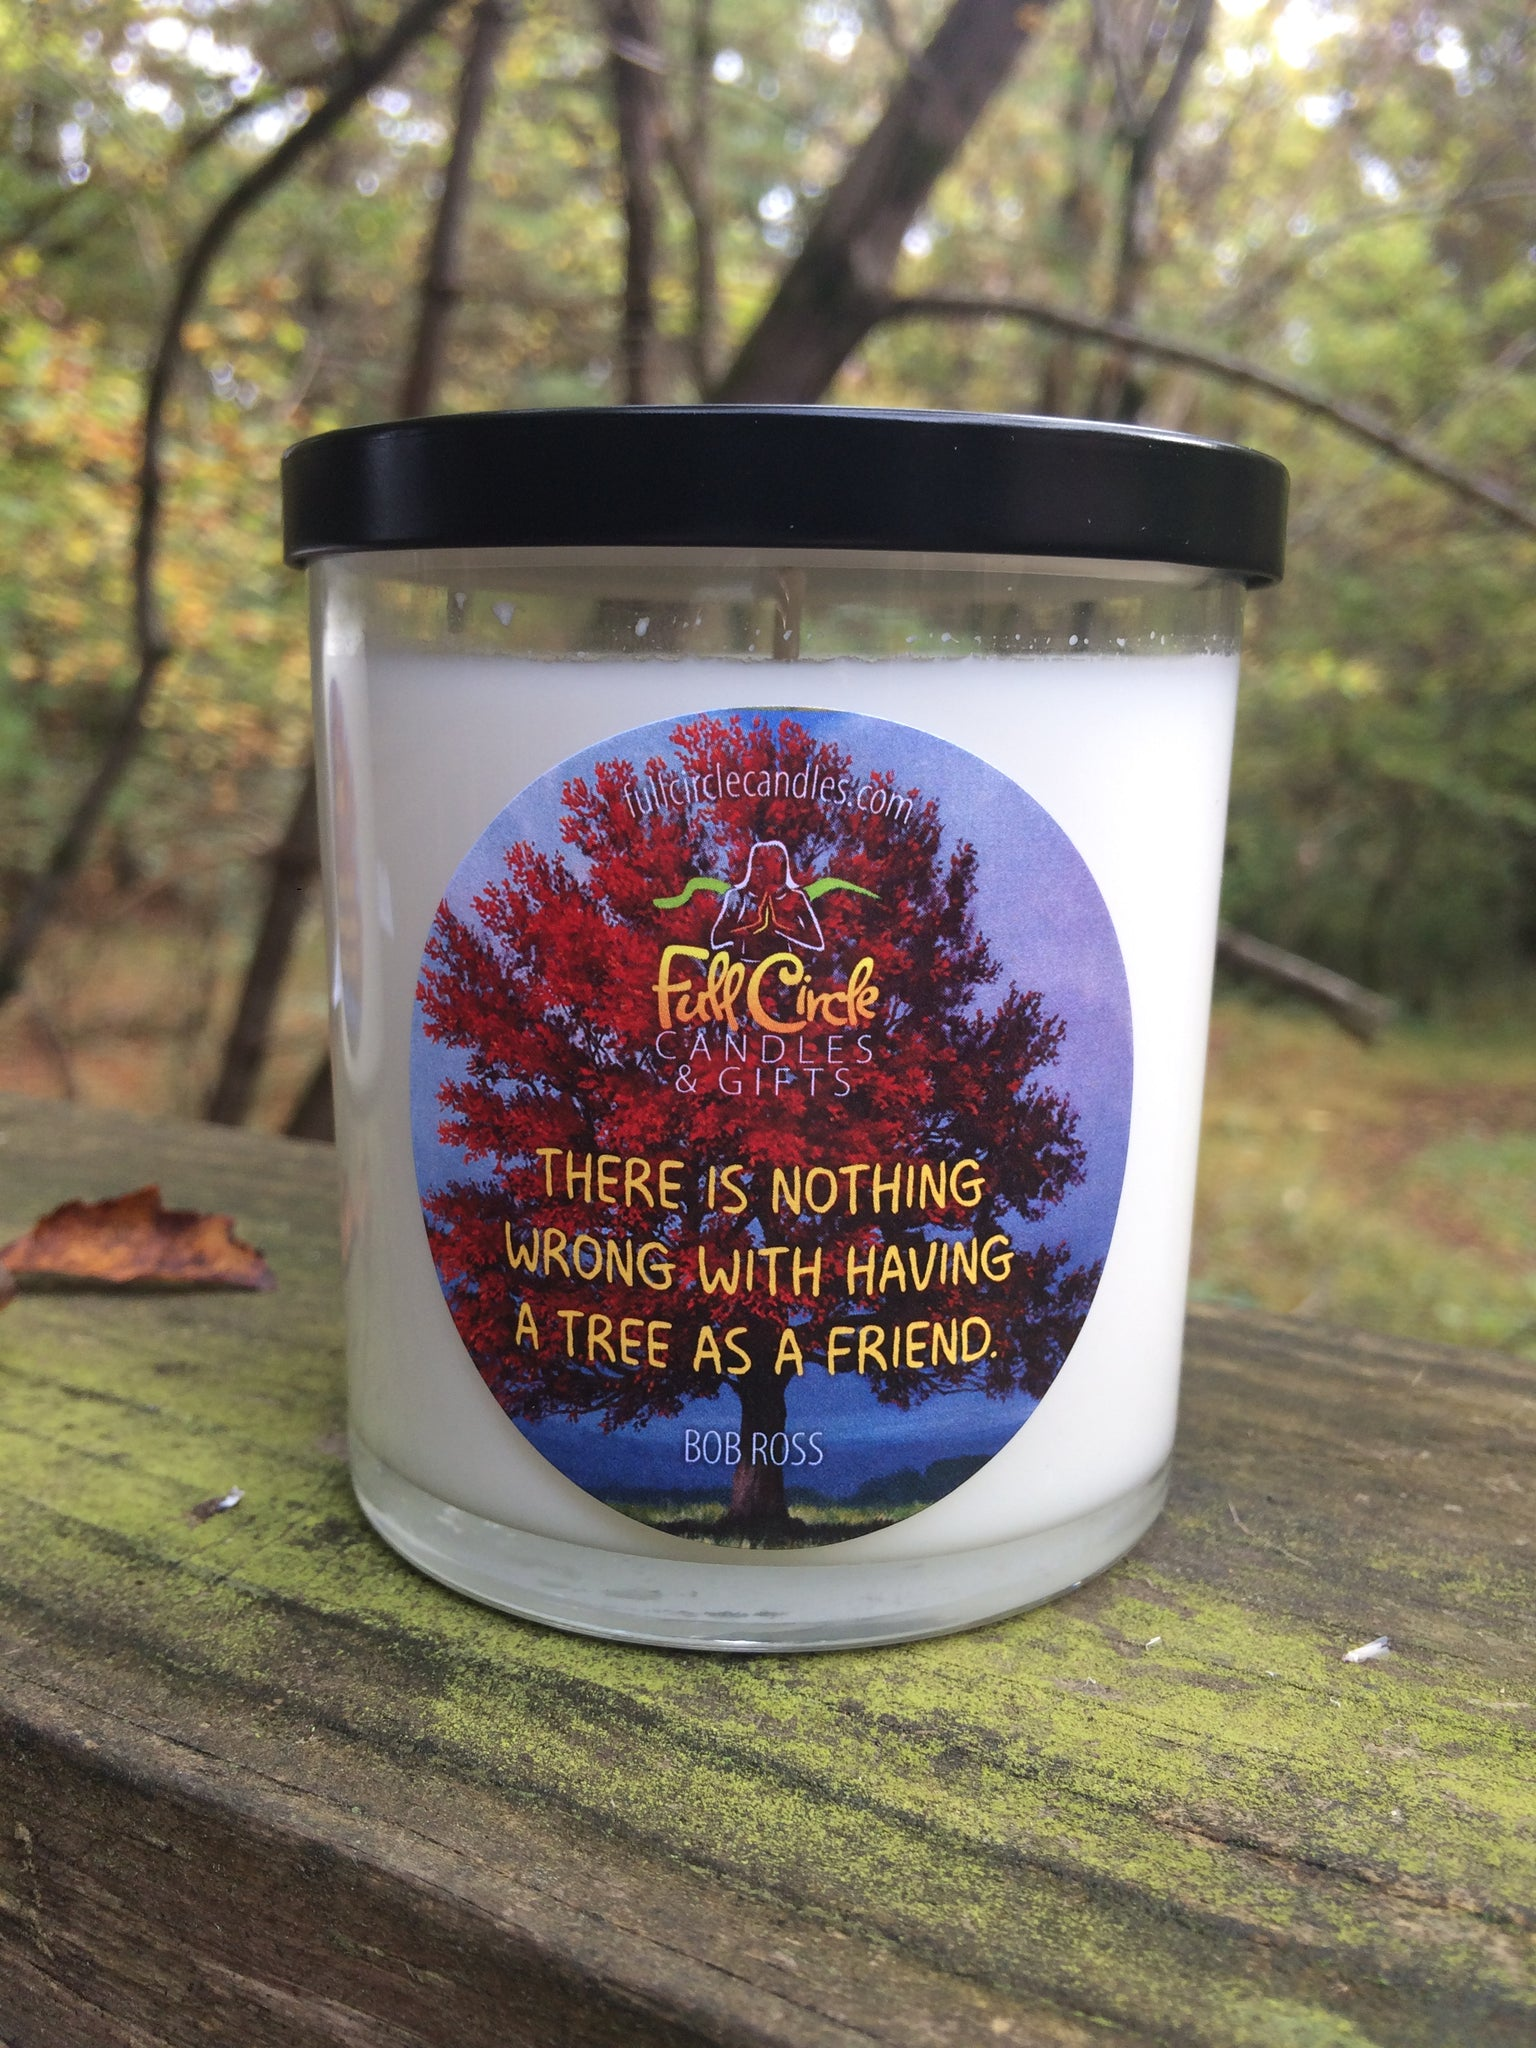 Bob Ross Themed Soy Candle | Gift Back Candles | Planting Trees